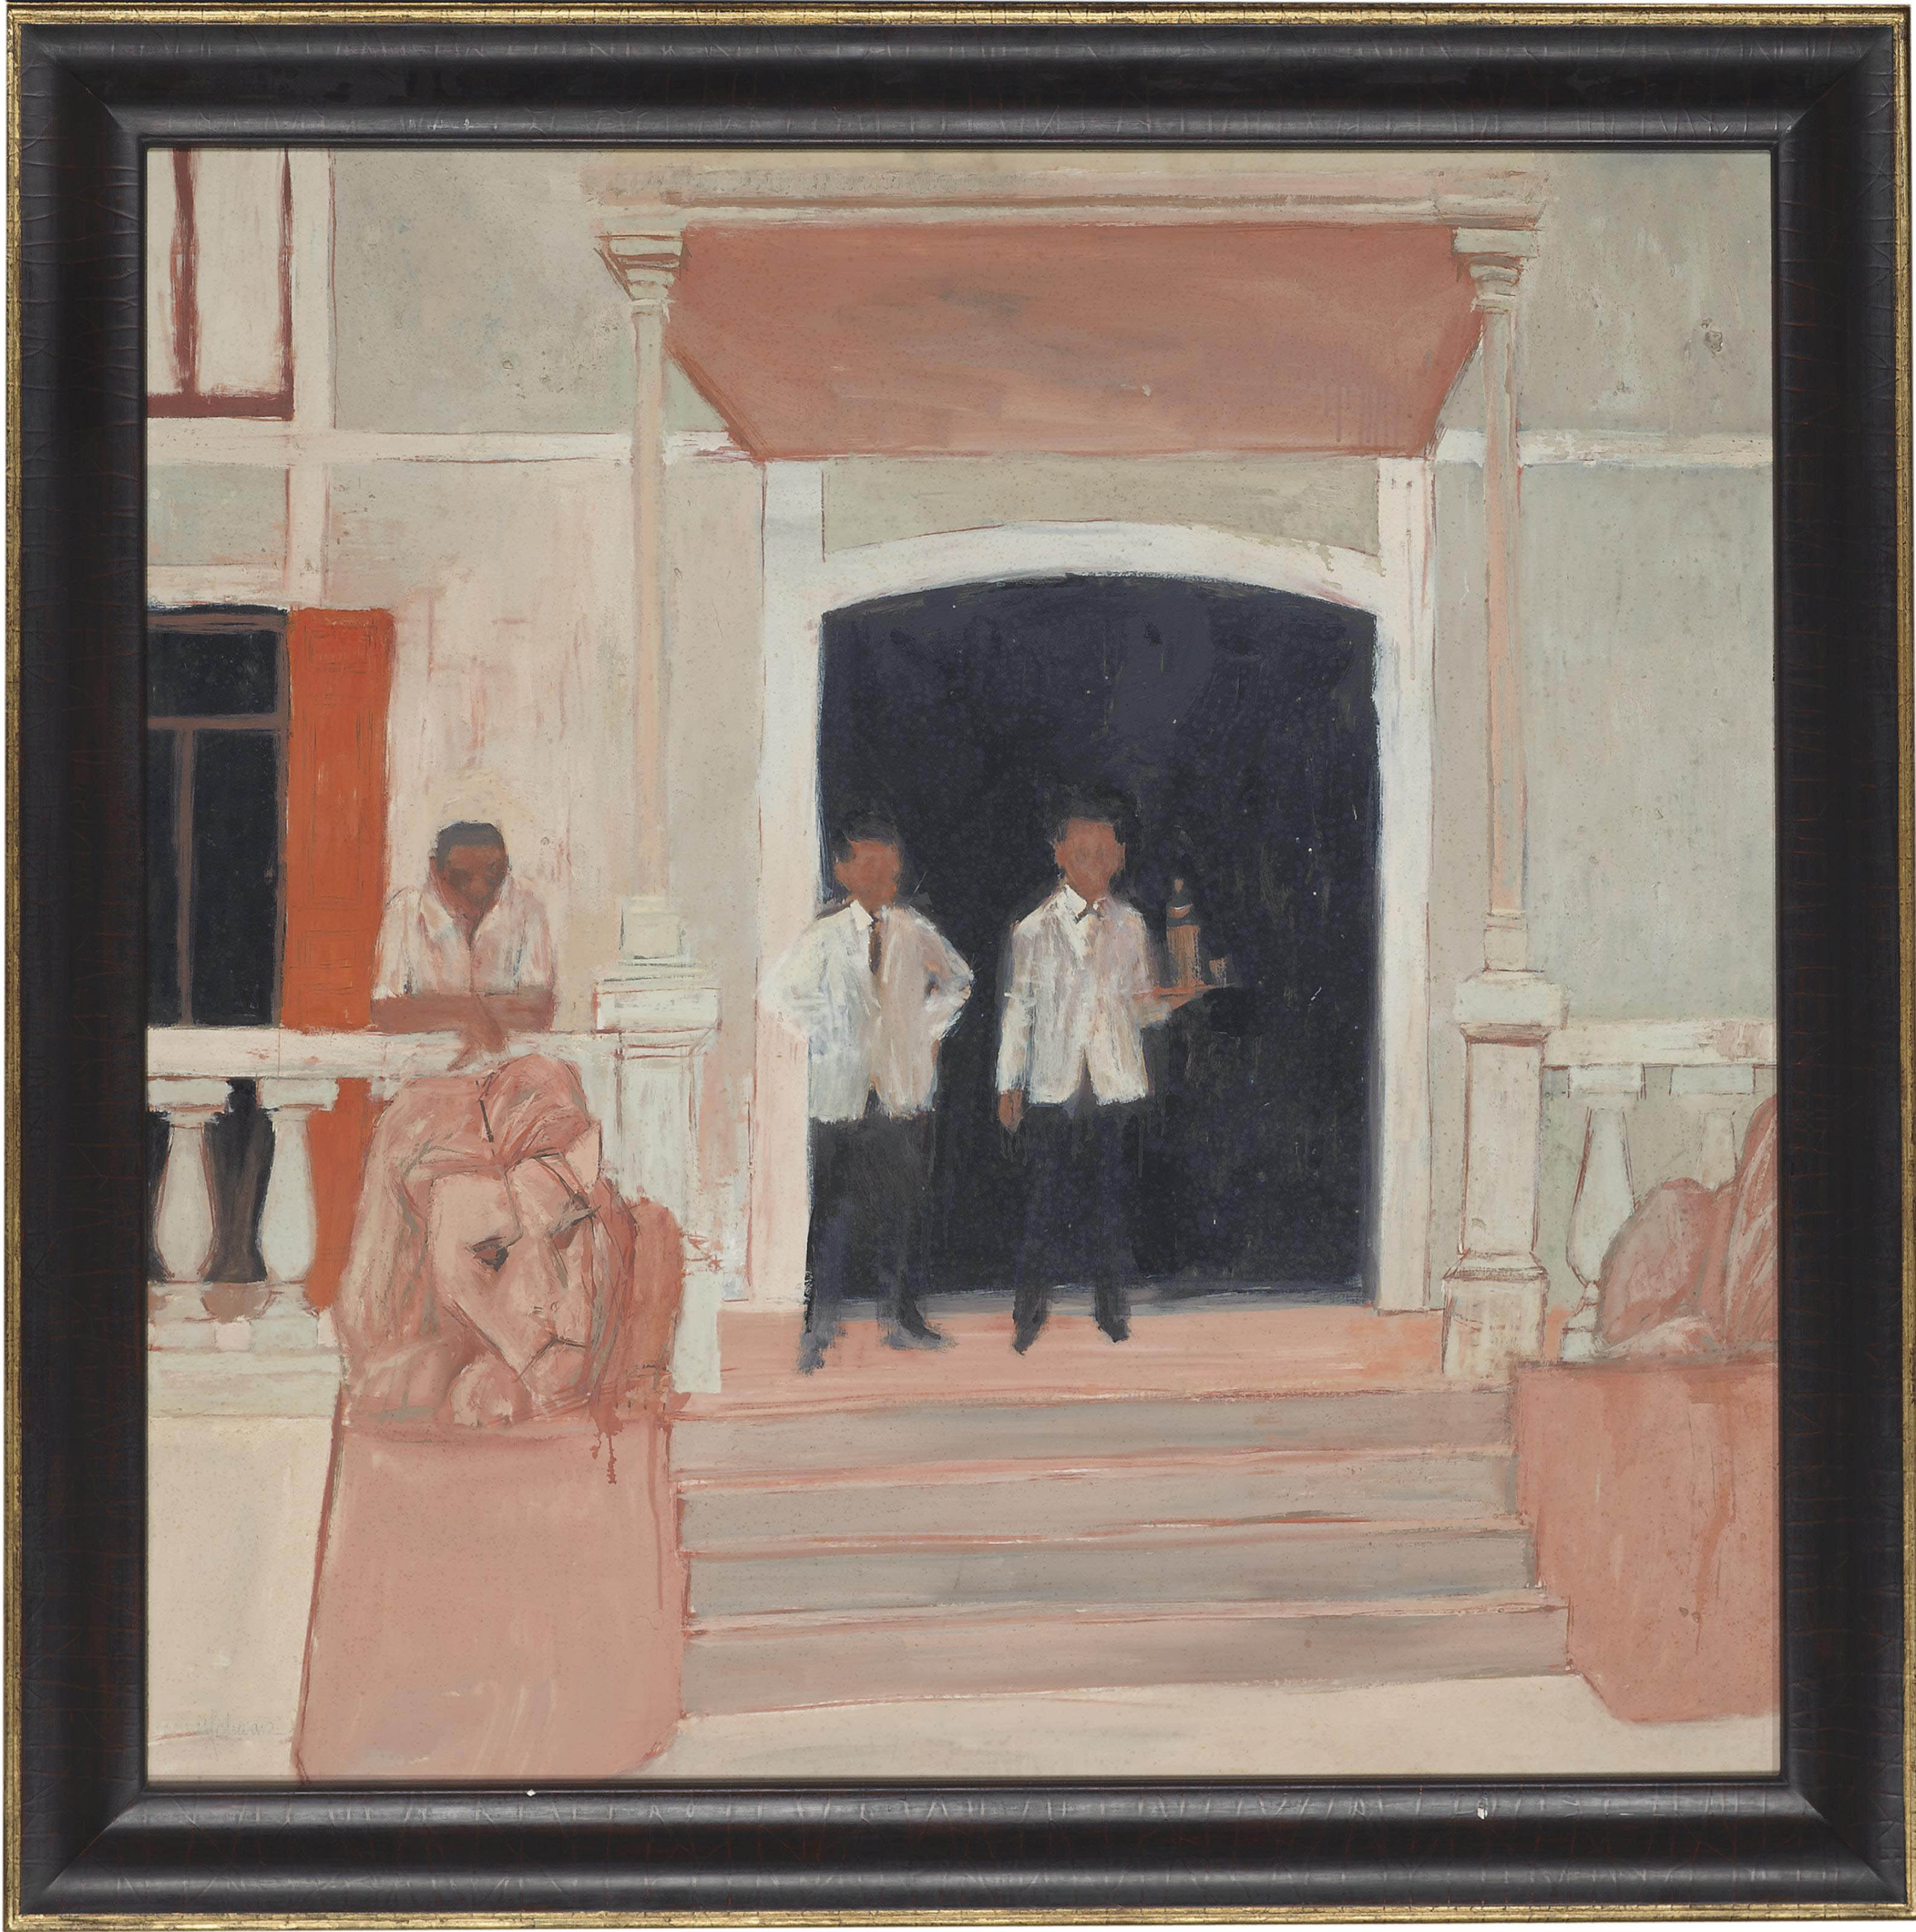 Spanish Hotel with Self-portrait